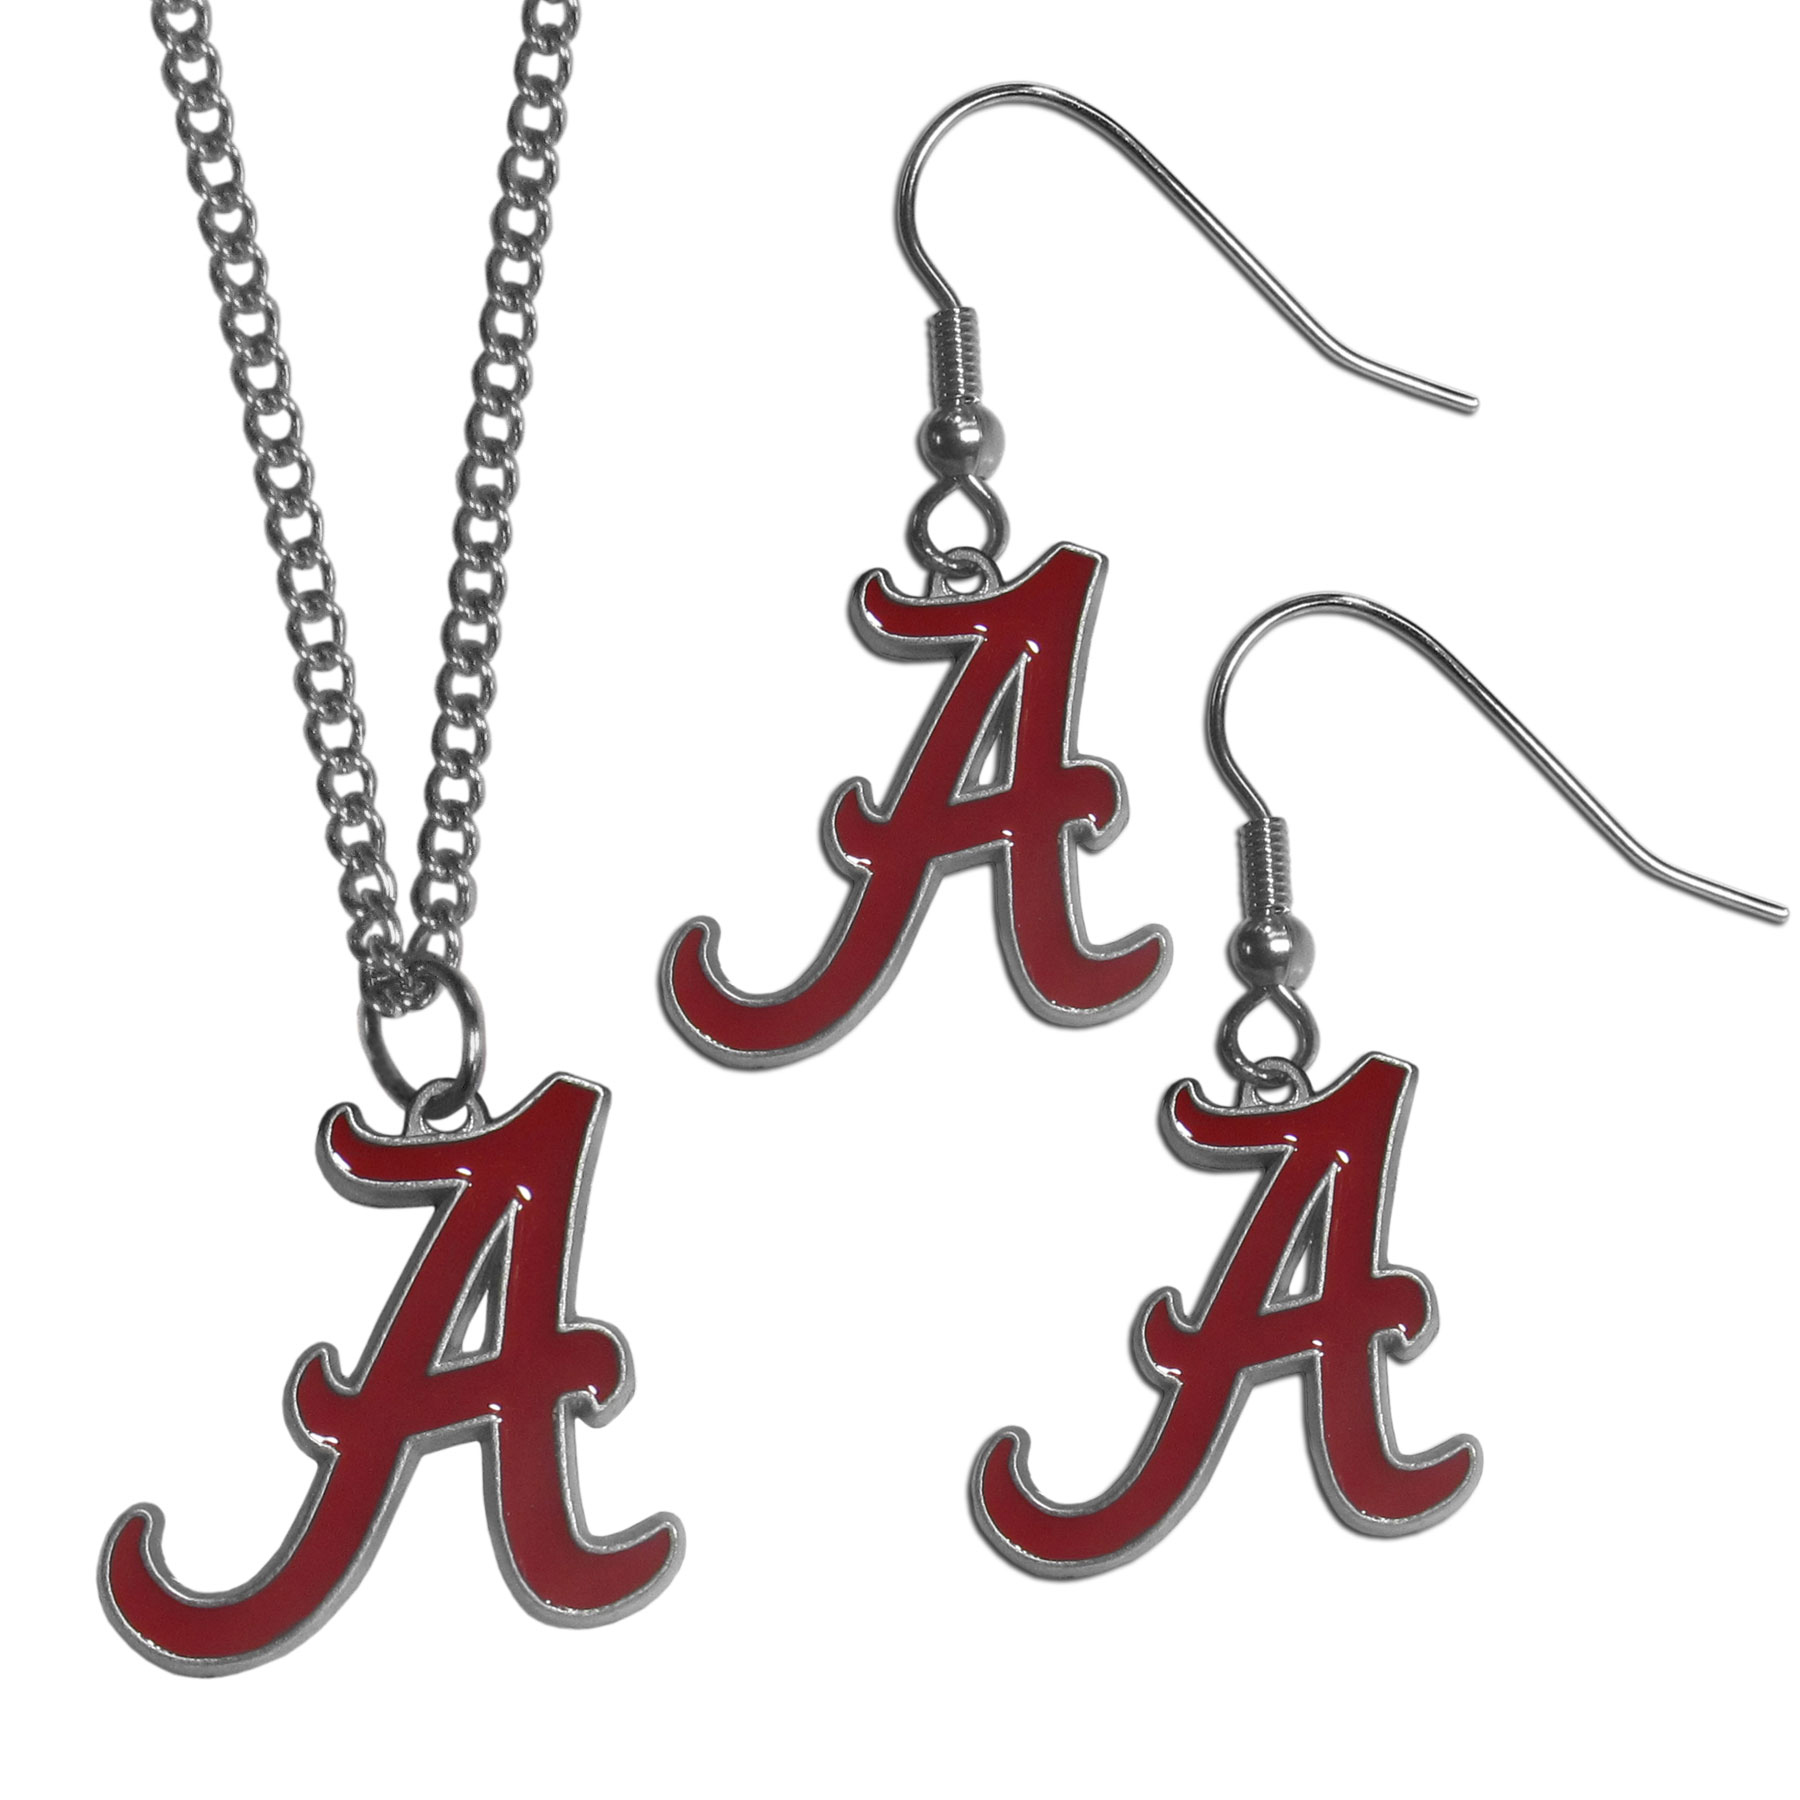 Alabama Crimson Tide Dangle Earrings and Chain Necklace Set - This classic jewelry set contains are most popular Alabama Crimson Tide dangle earrings and 22 inch chain necklace. The trendy, dangle earrings are lightweight and feature a fully cast metal team charm with enameled team colors. The matching necklace completes this fashion forward combo and is a spirited set that is perfect for game day but nice enough for everyday.